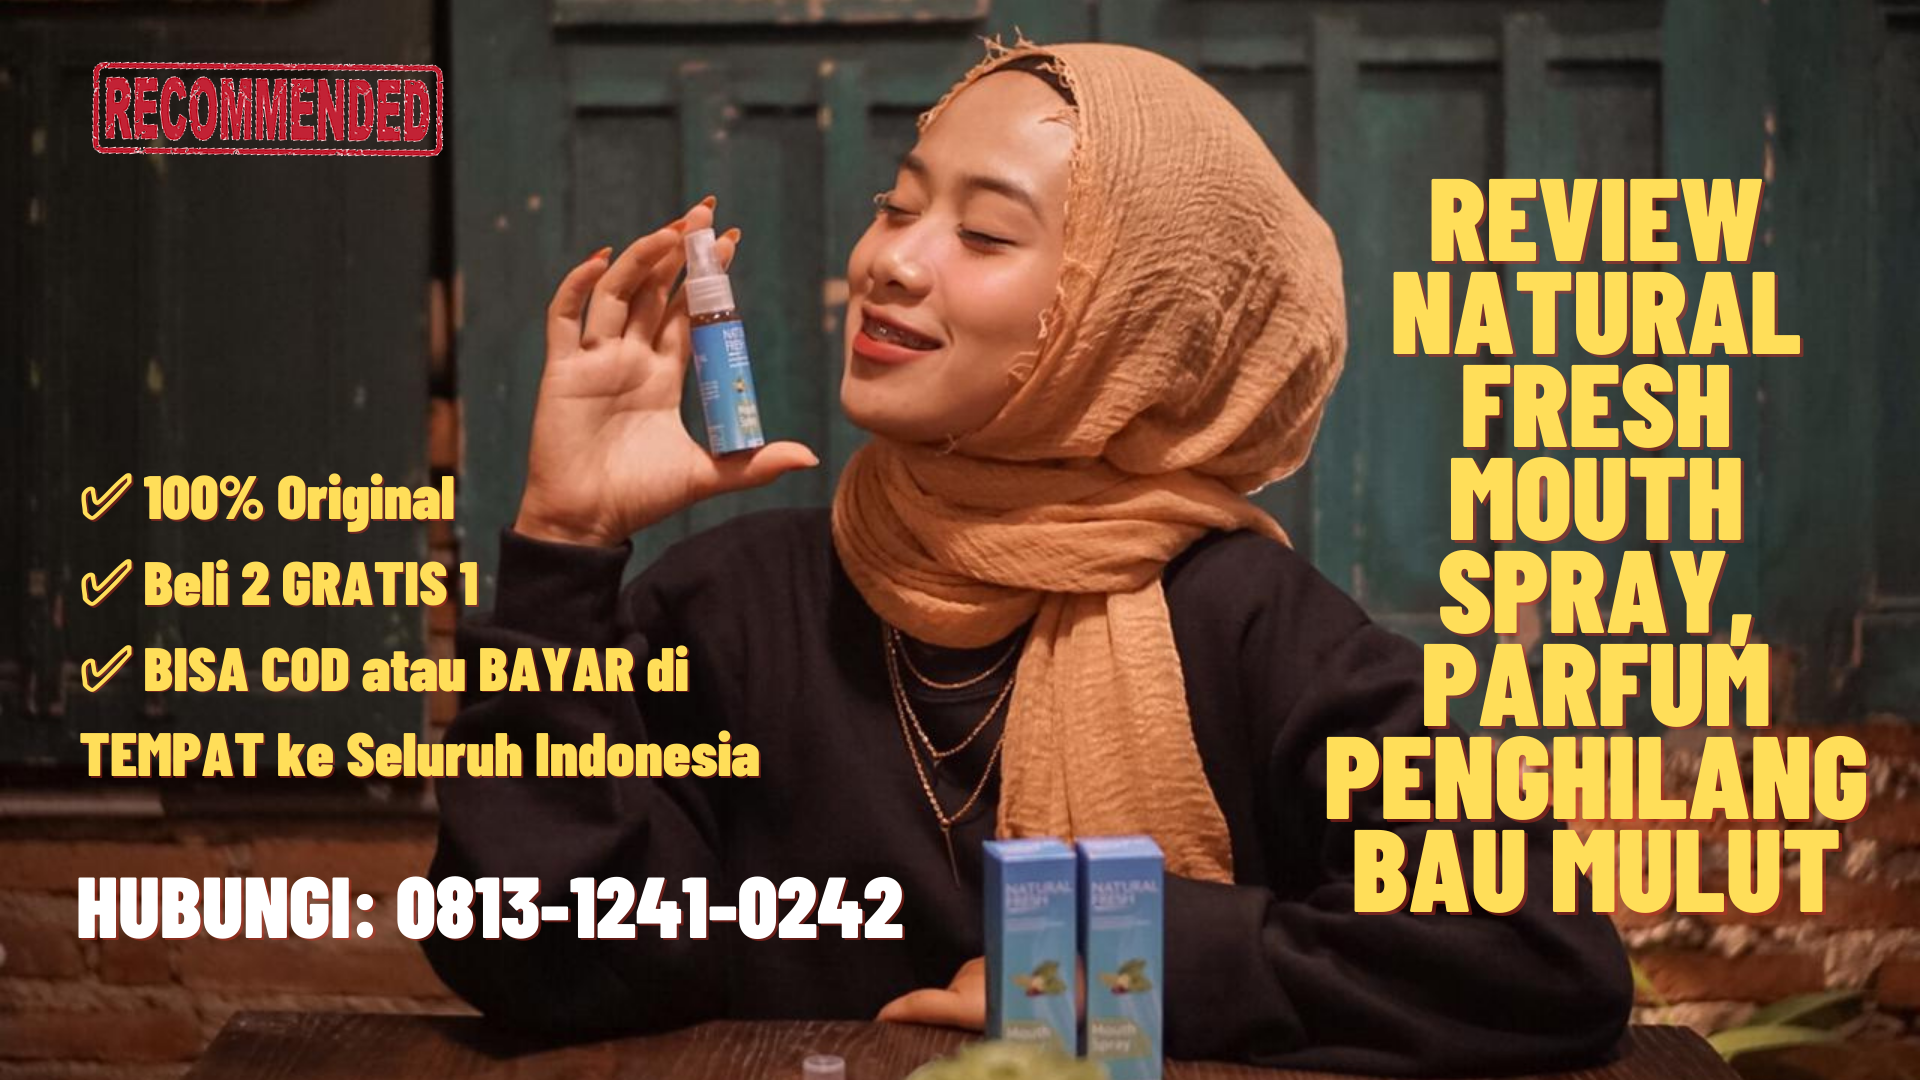 Review natural fresh untuk bau mulut